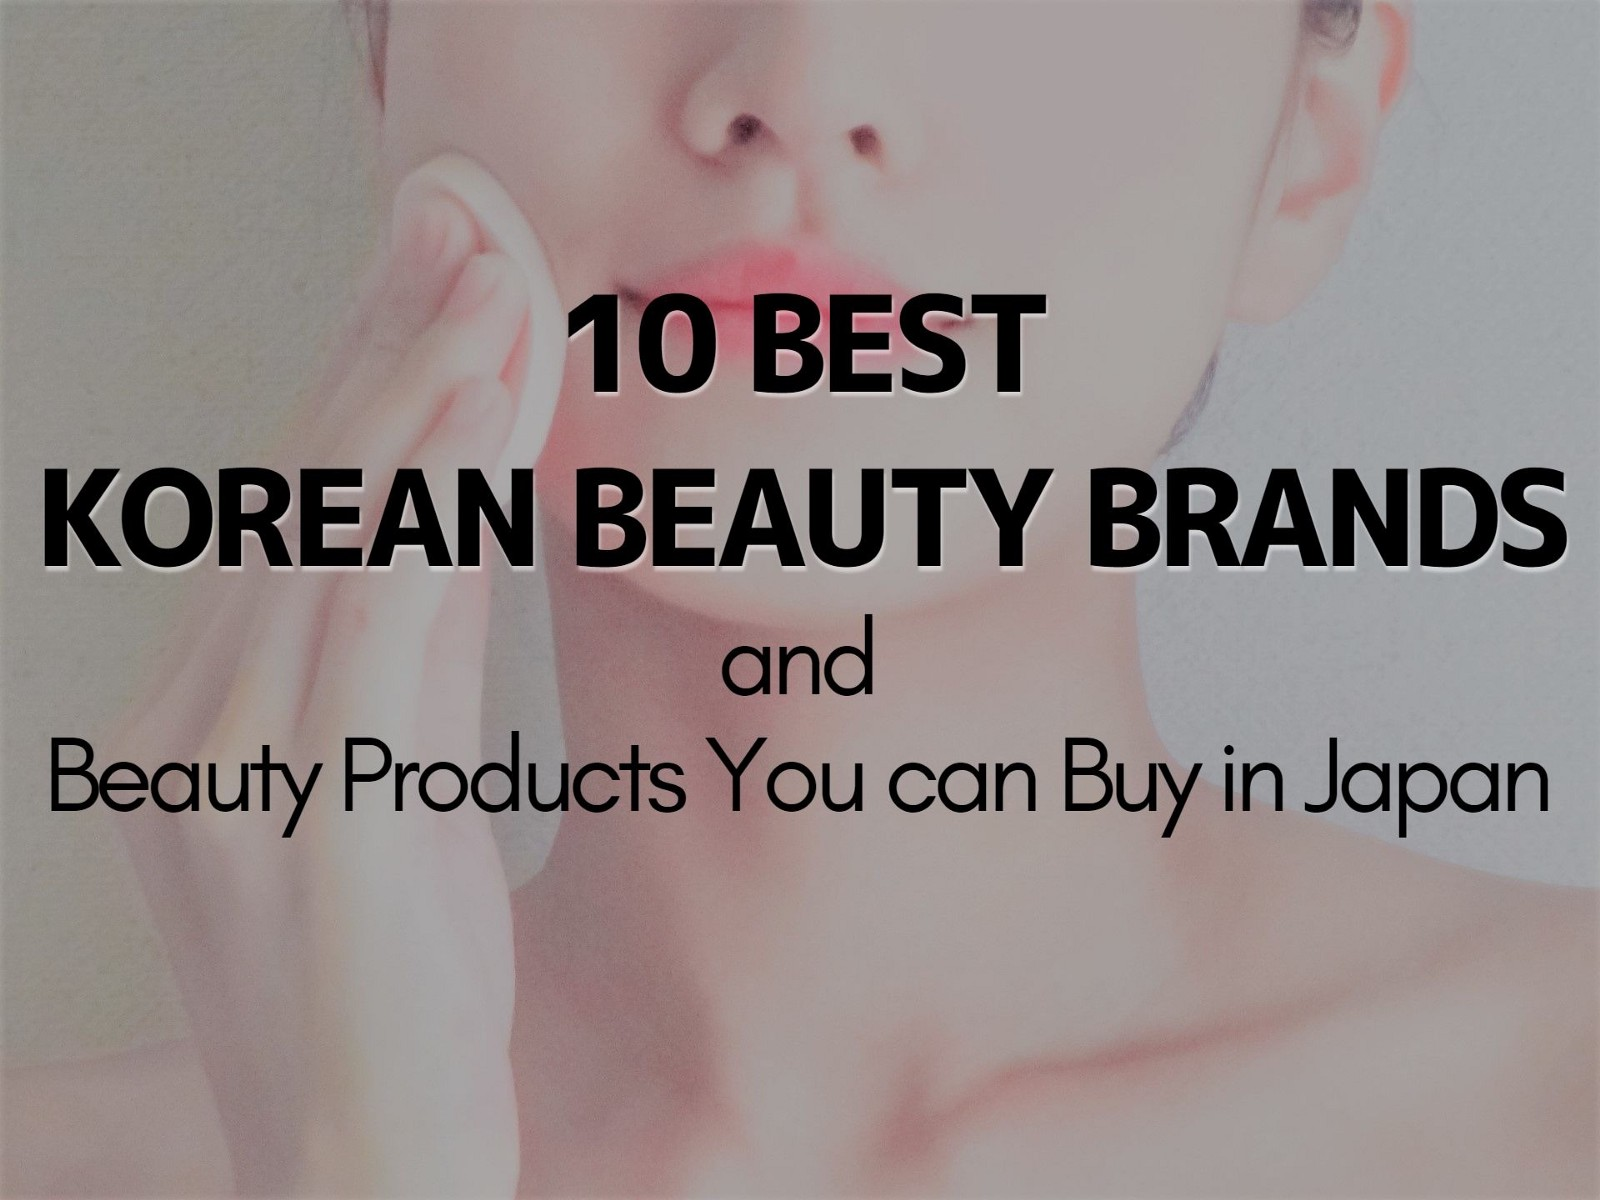 10 Best Korean Beauty Brands